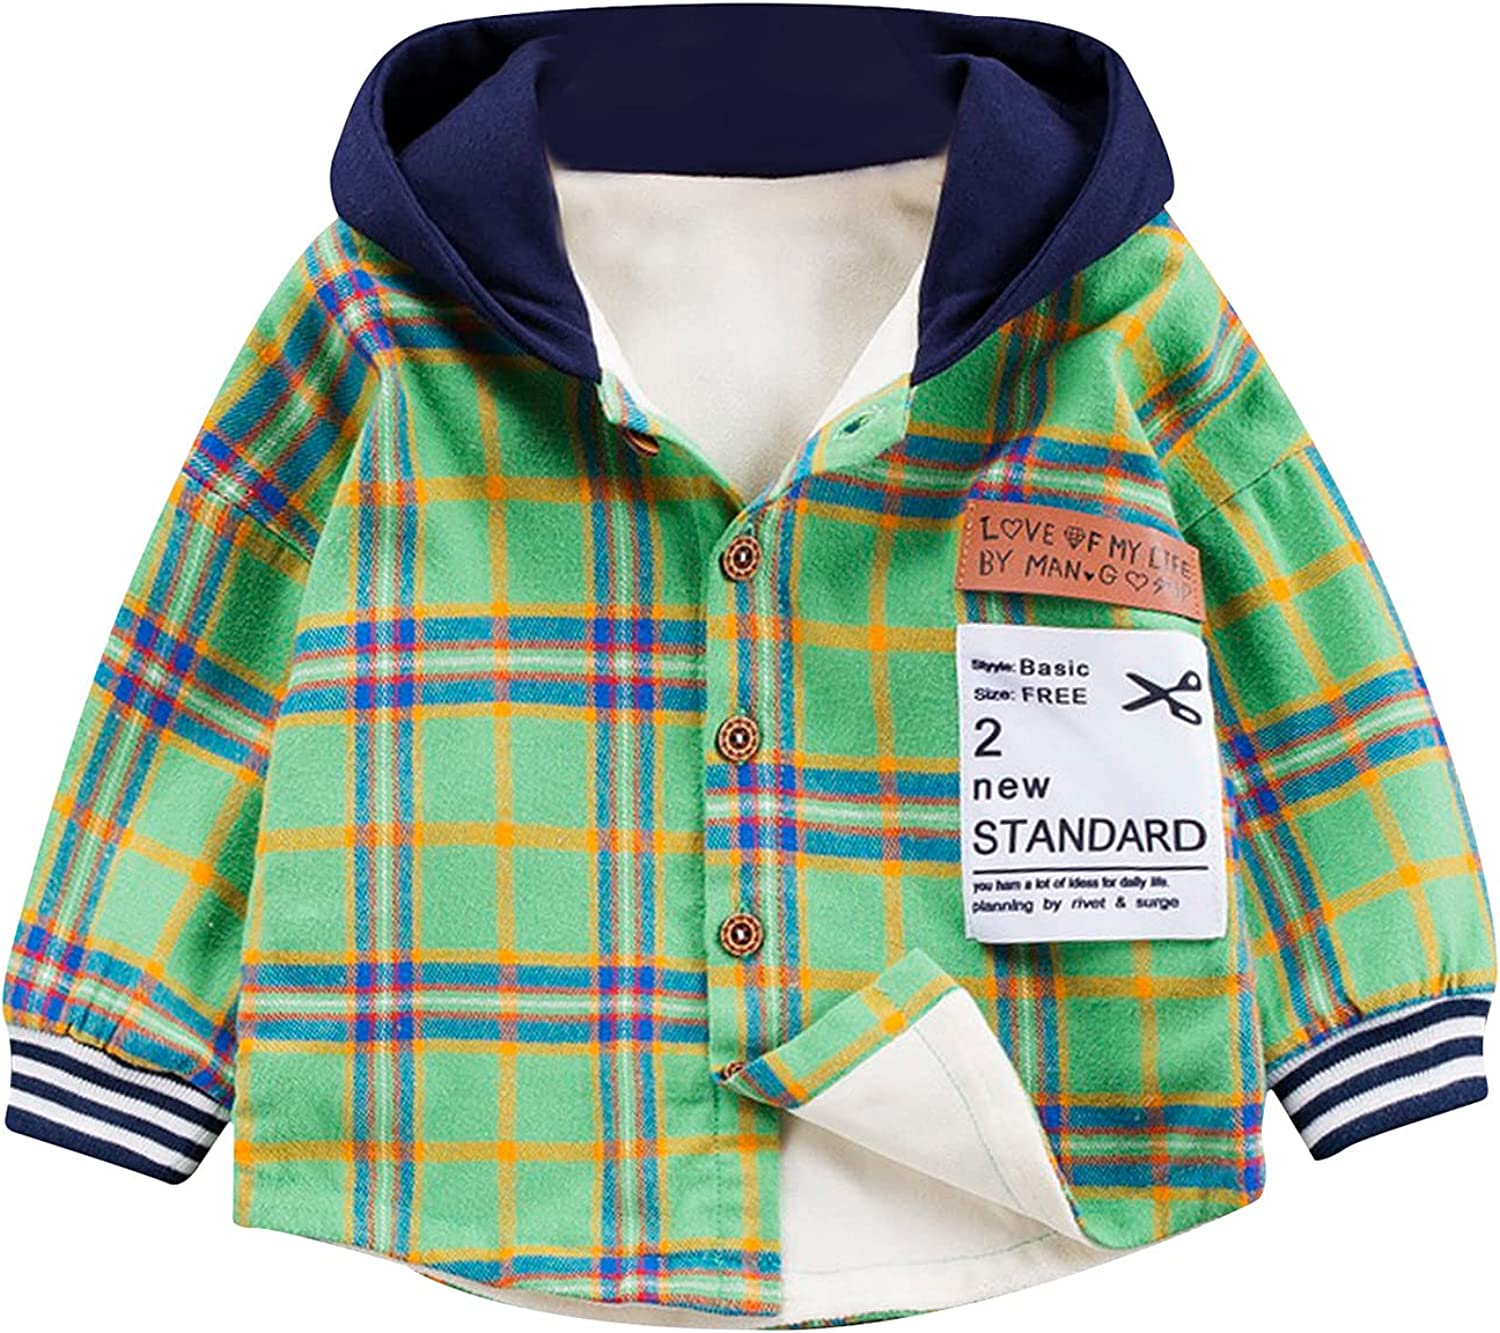 Kid's Shirt, Autumn Warm Long Sleeve Plaid Hooded Top for Birthday Party Photography Vacation